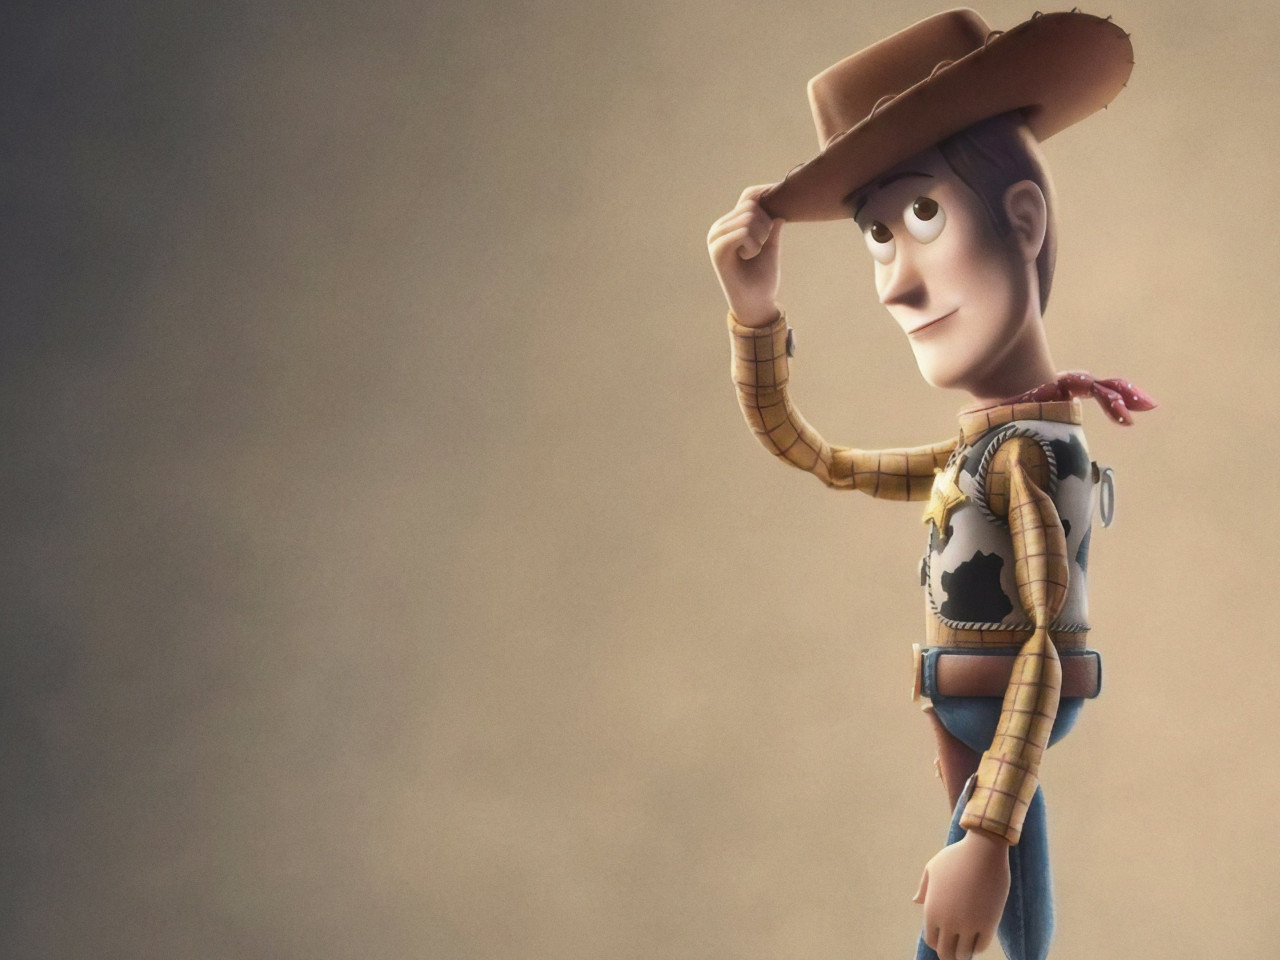 Toy Story 4 wallpaper 1280x960